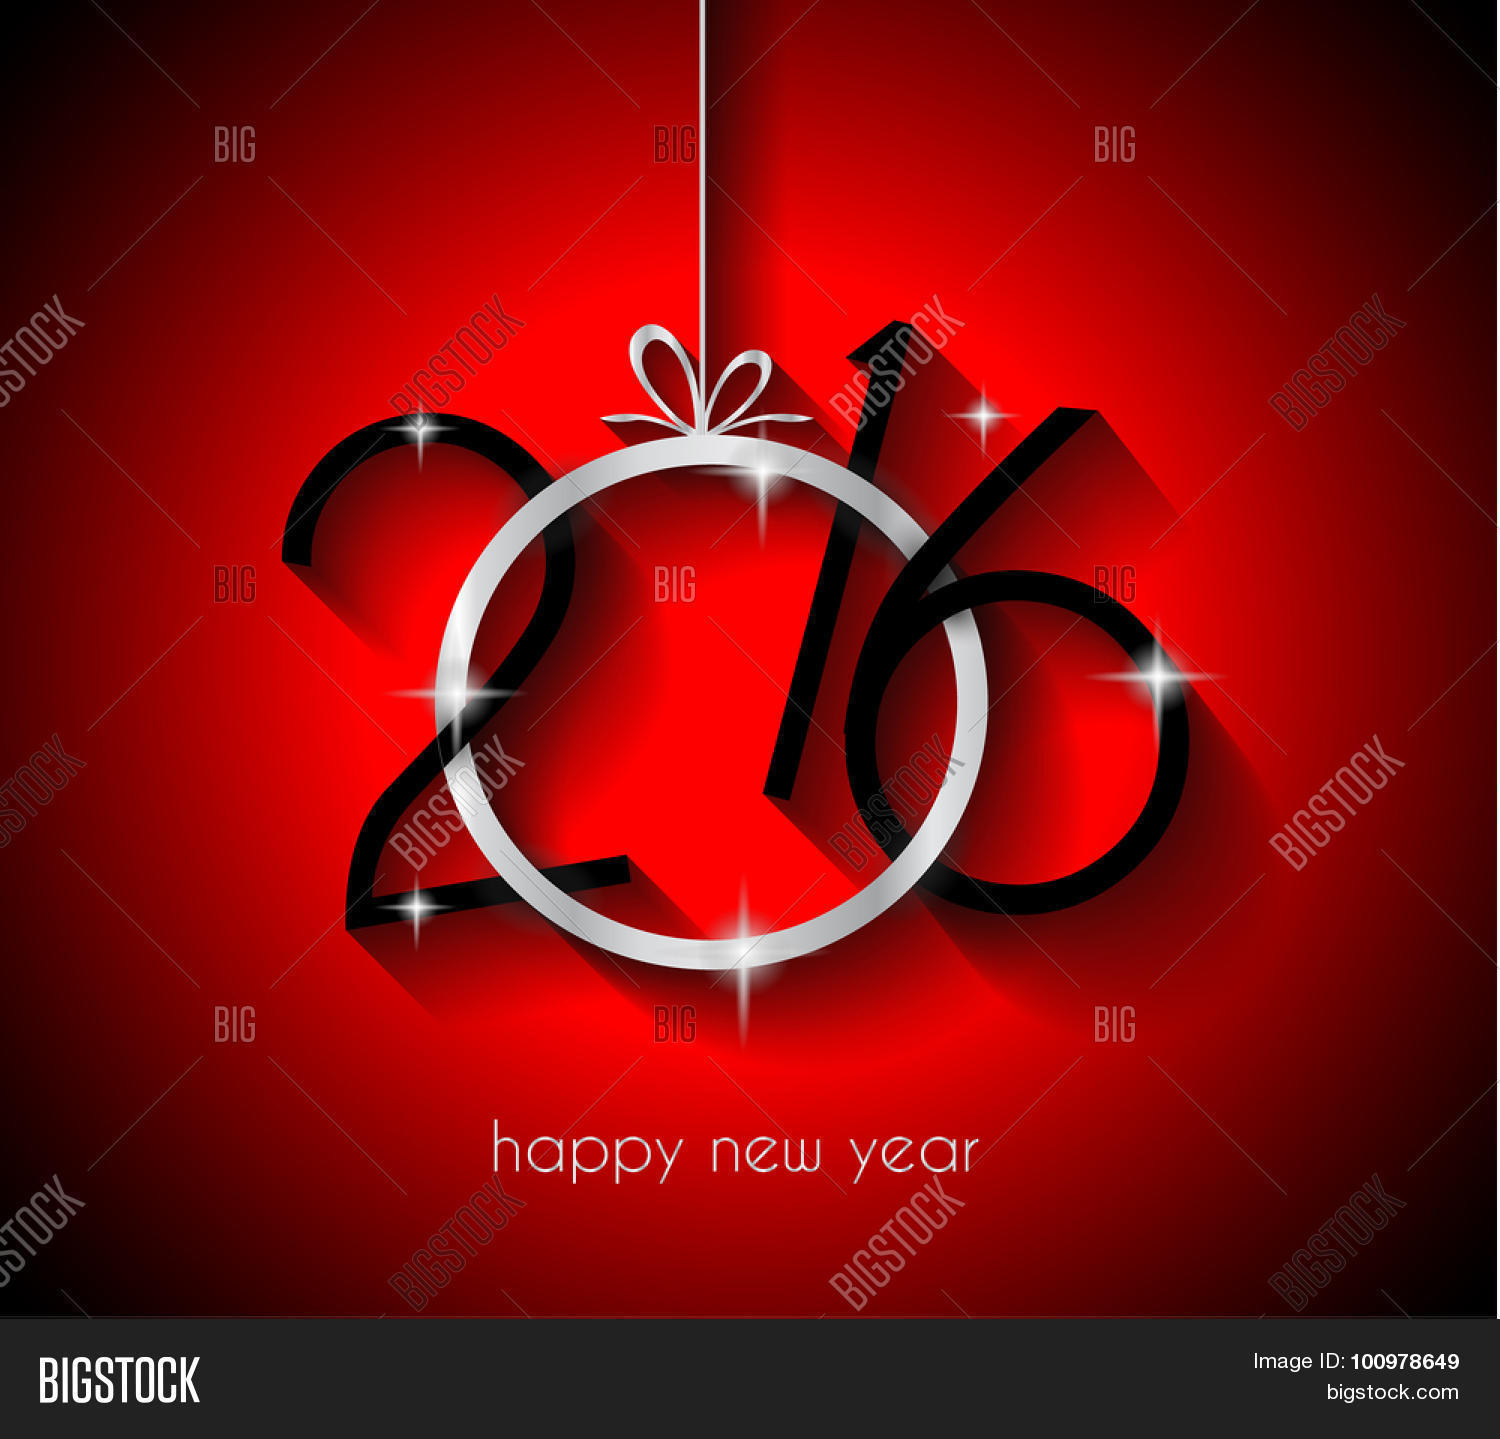 happy new year background for your christmas dinner 2016 happy new year background for your christmas dinner invitations festive posters restaurant menu